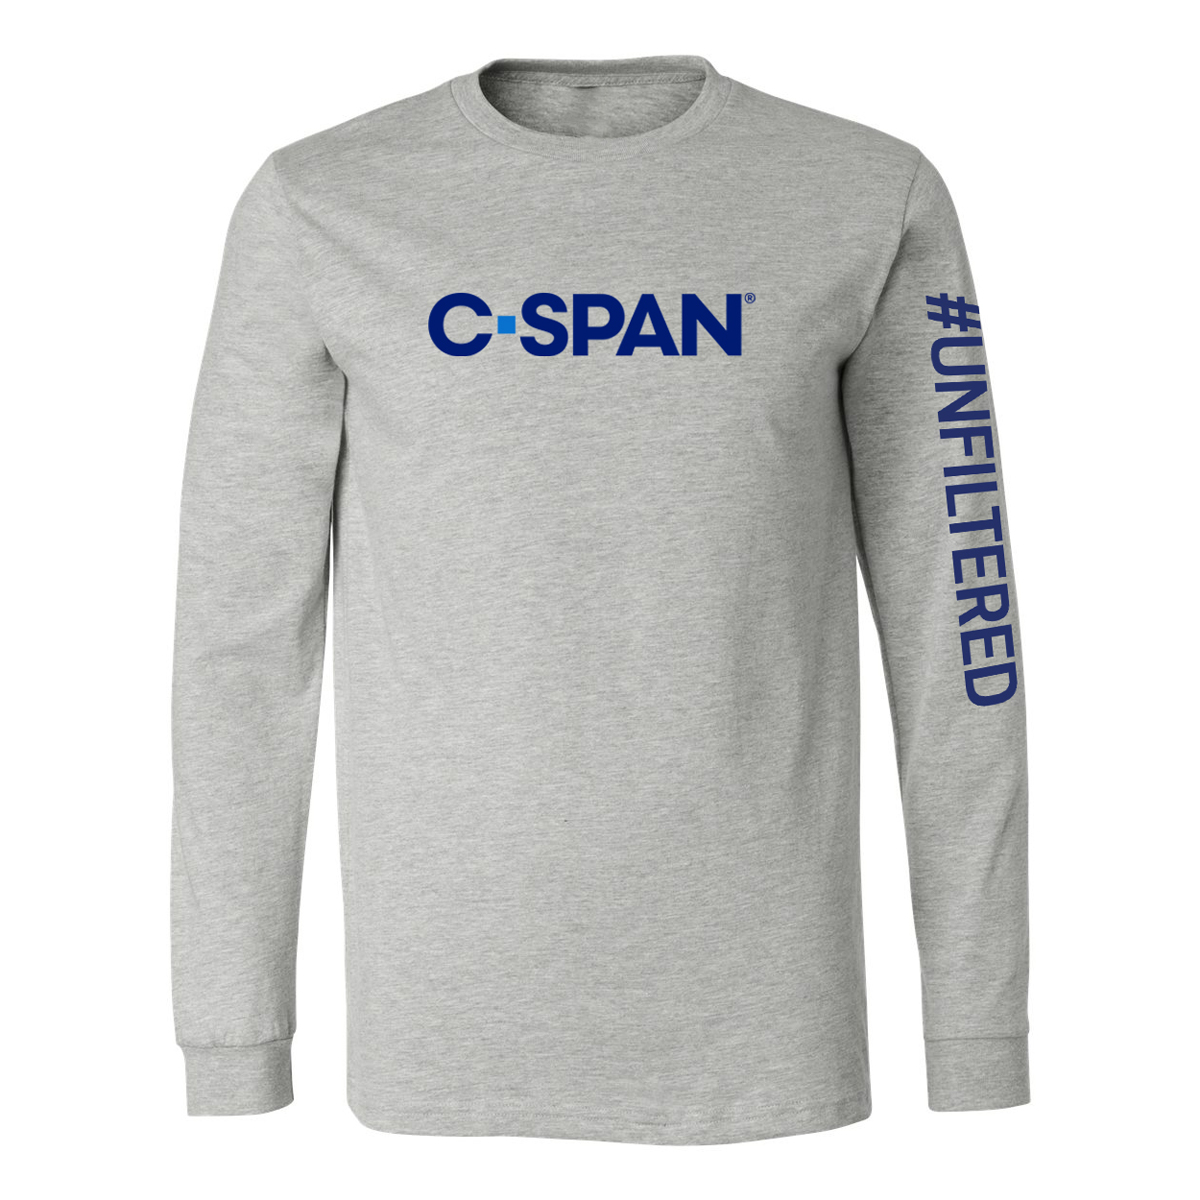 C-SPAN #Unfiltered LS T-shirt